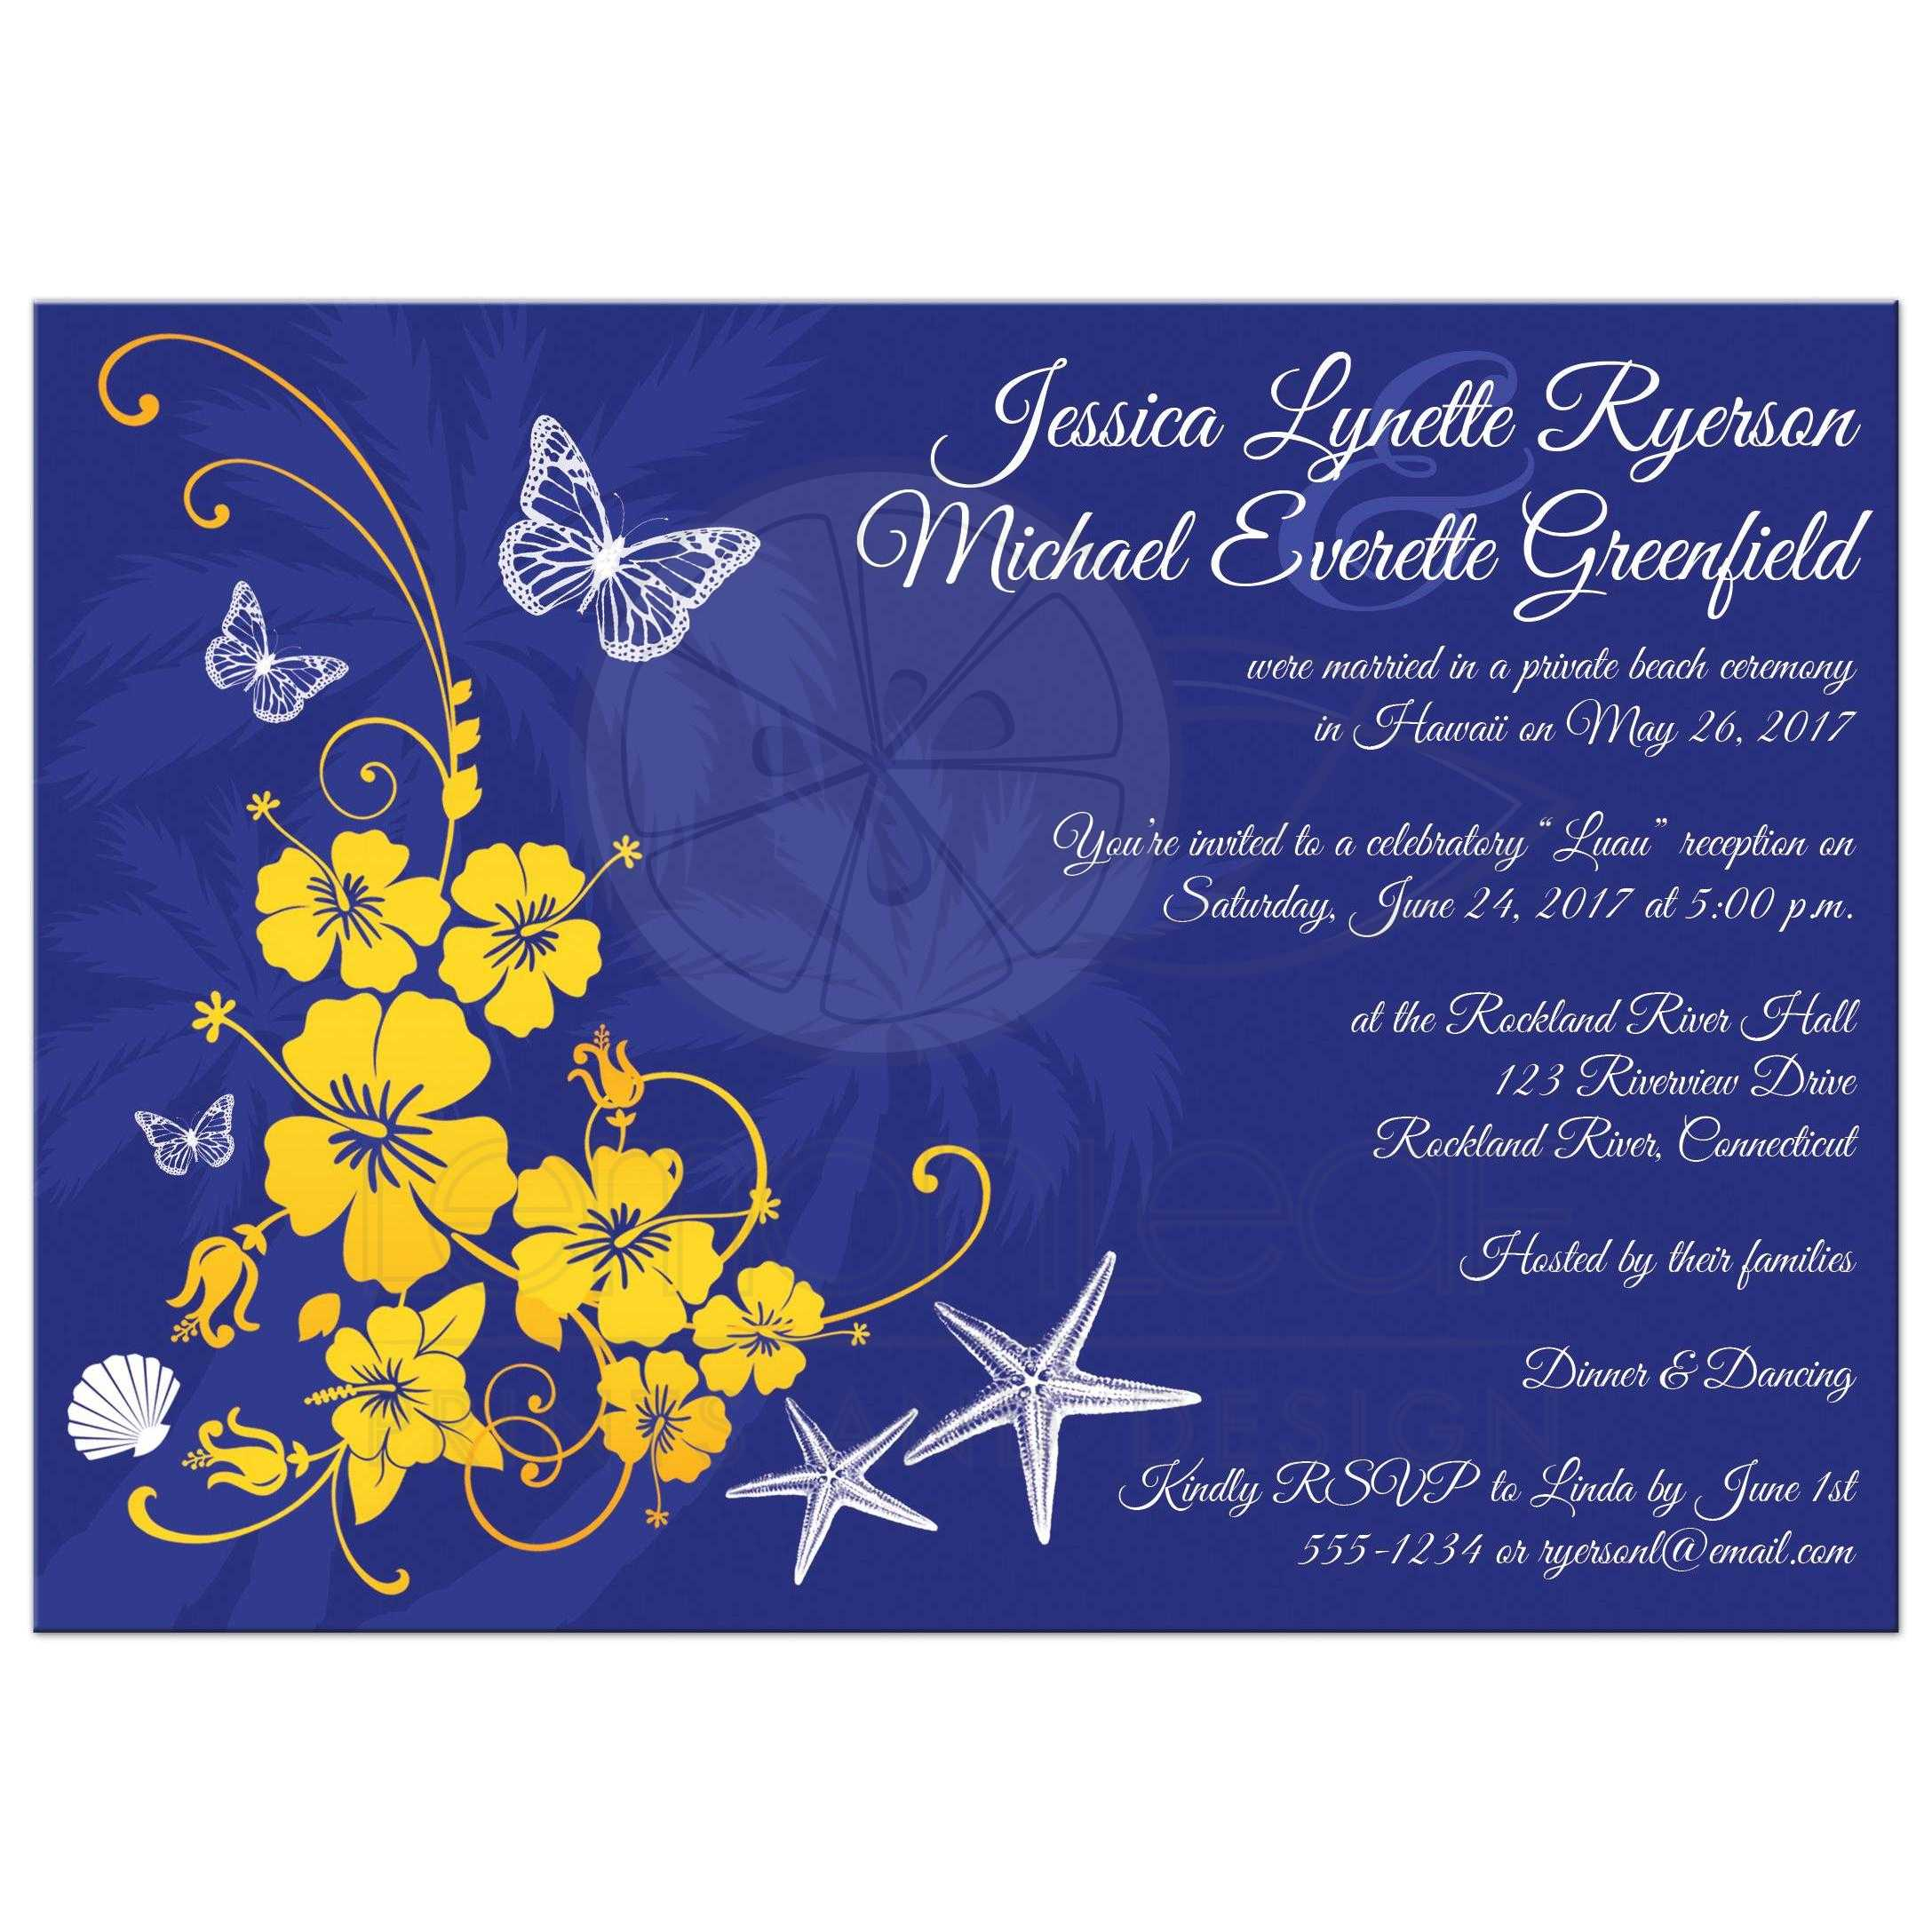 Post Wedding Reception Invitation Blue Yellow White Tropical Floral Butterflies Sea Shells